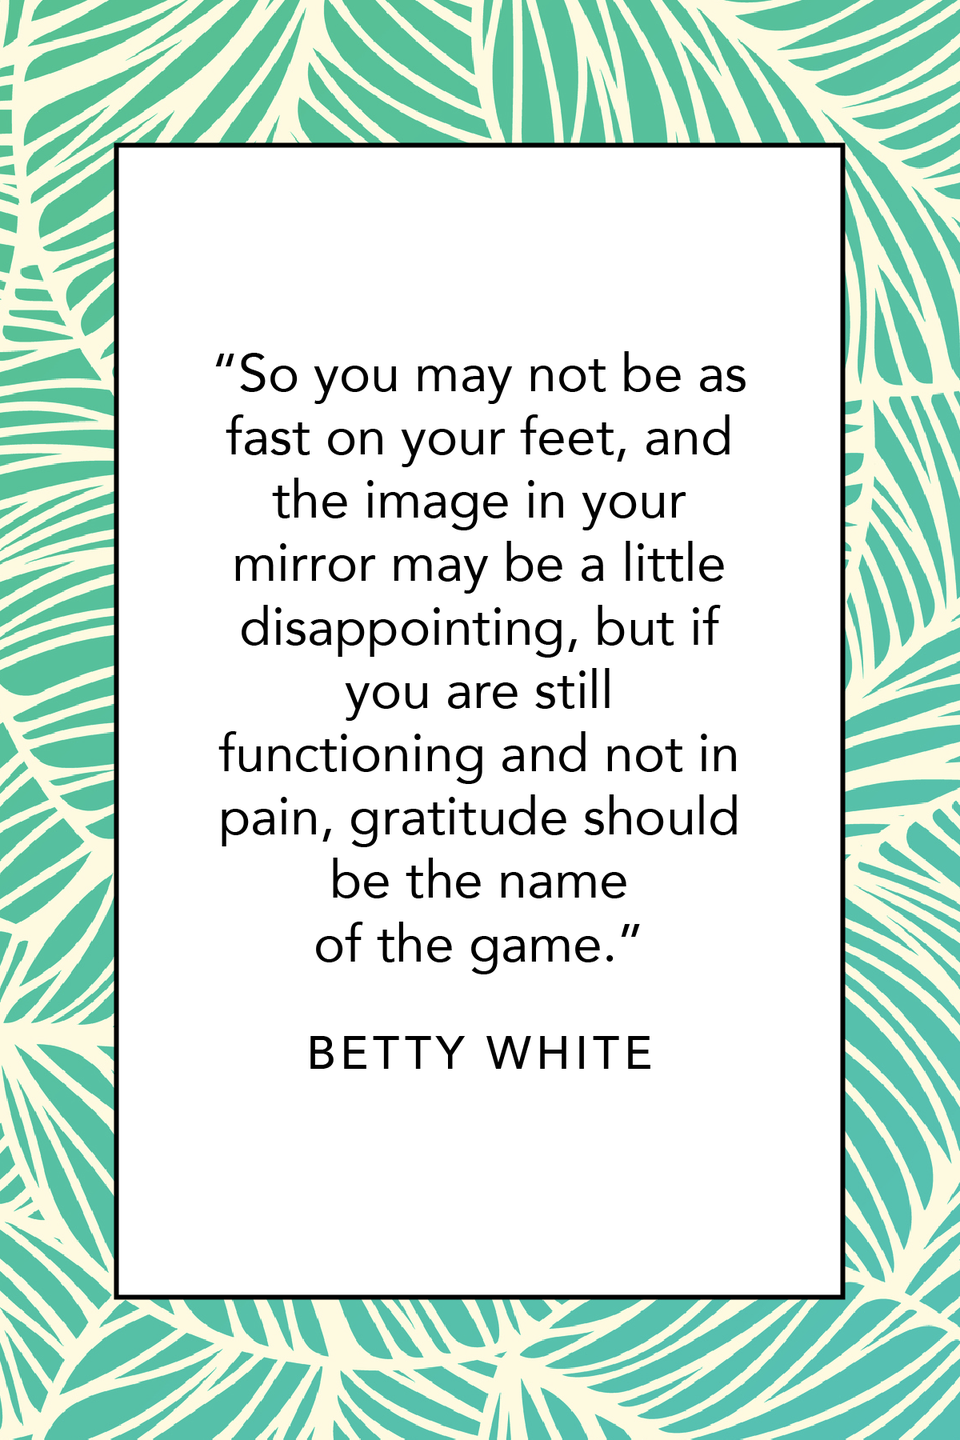 """<p>She also writes about gratitude in her book: """"So you may not be as fast on your feet, and the image in your mirror may be a little disappointing, but if you are still functioning and not in pain, gratitude should be the name of the game.""""</p>"""